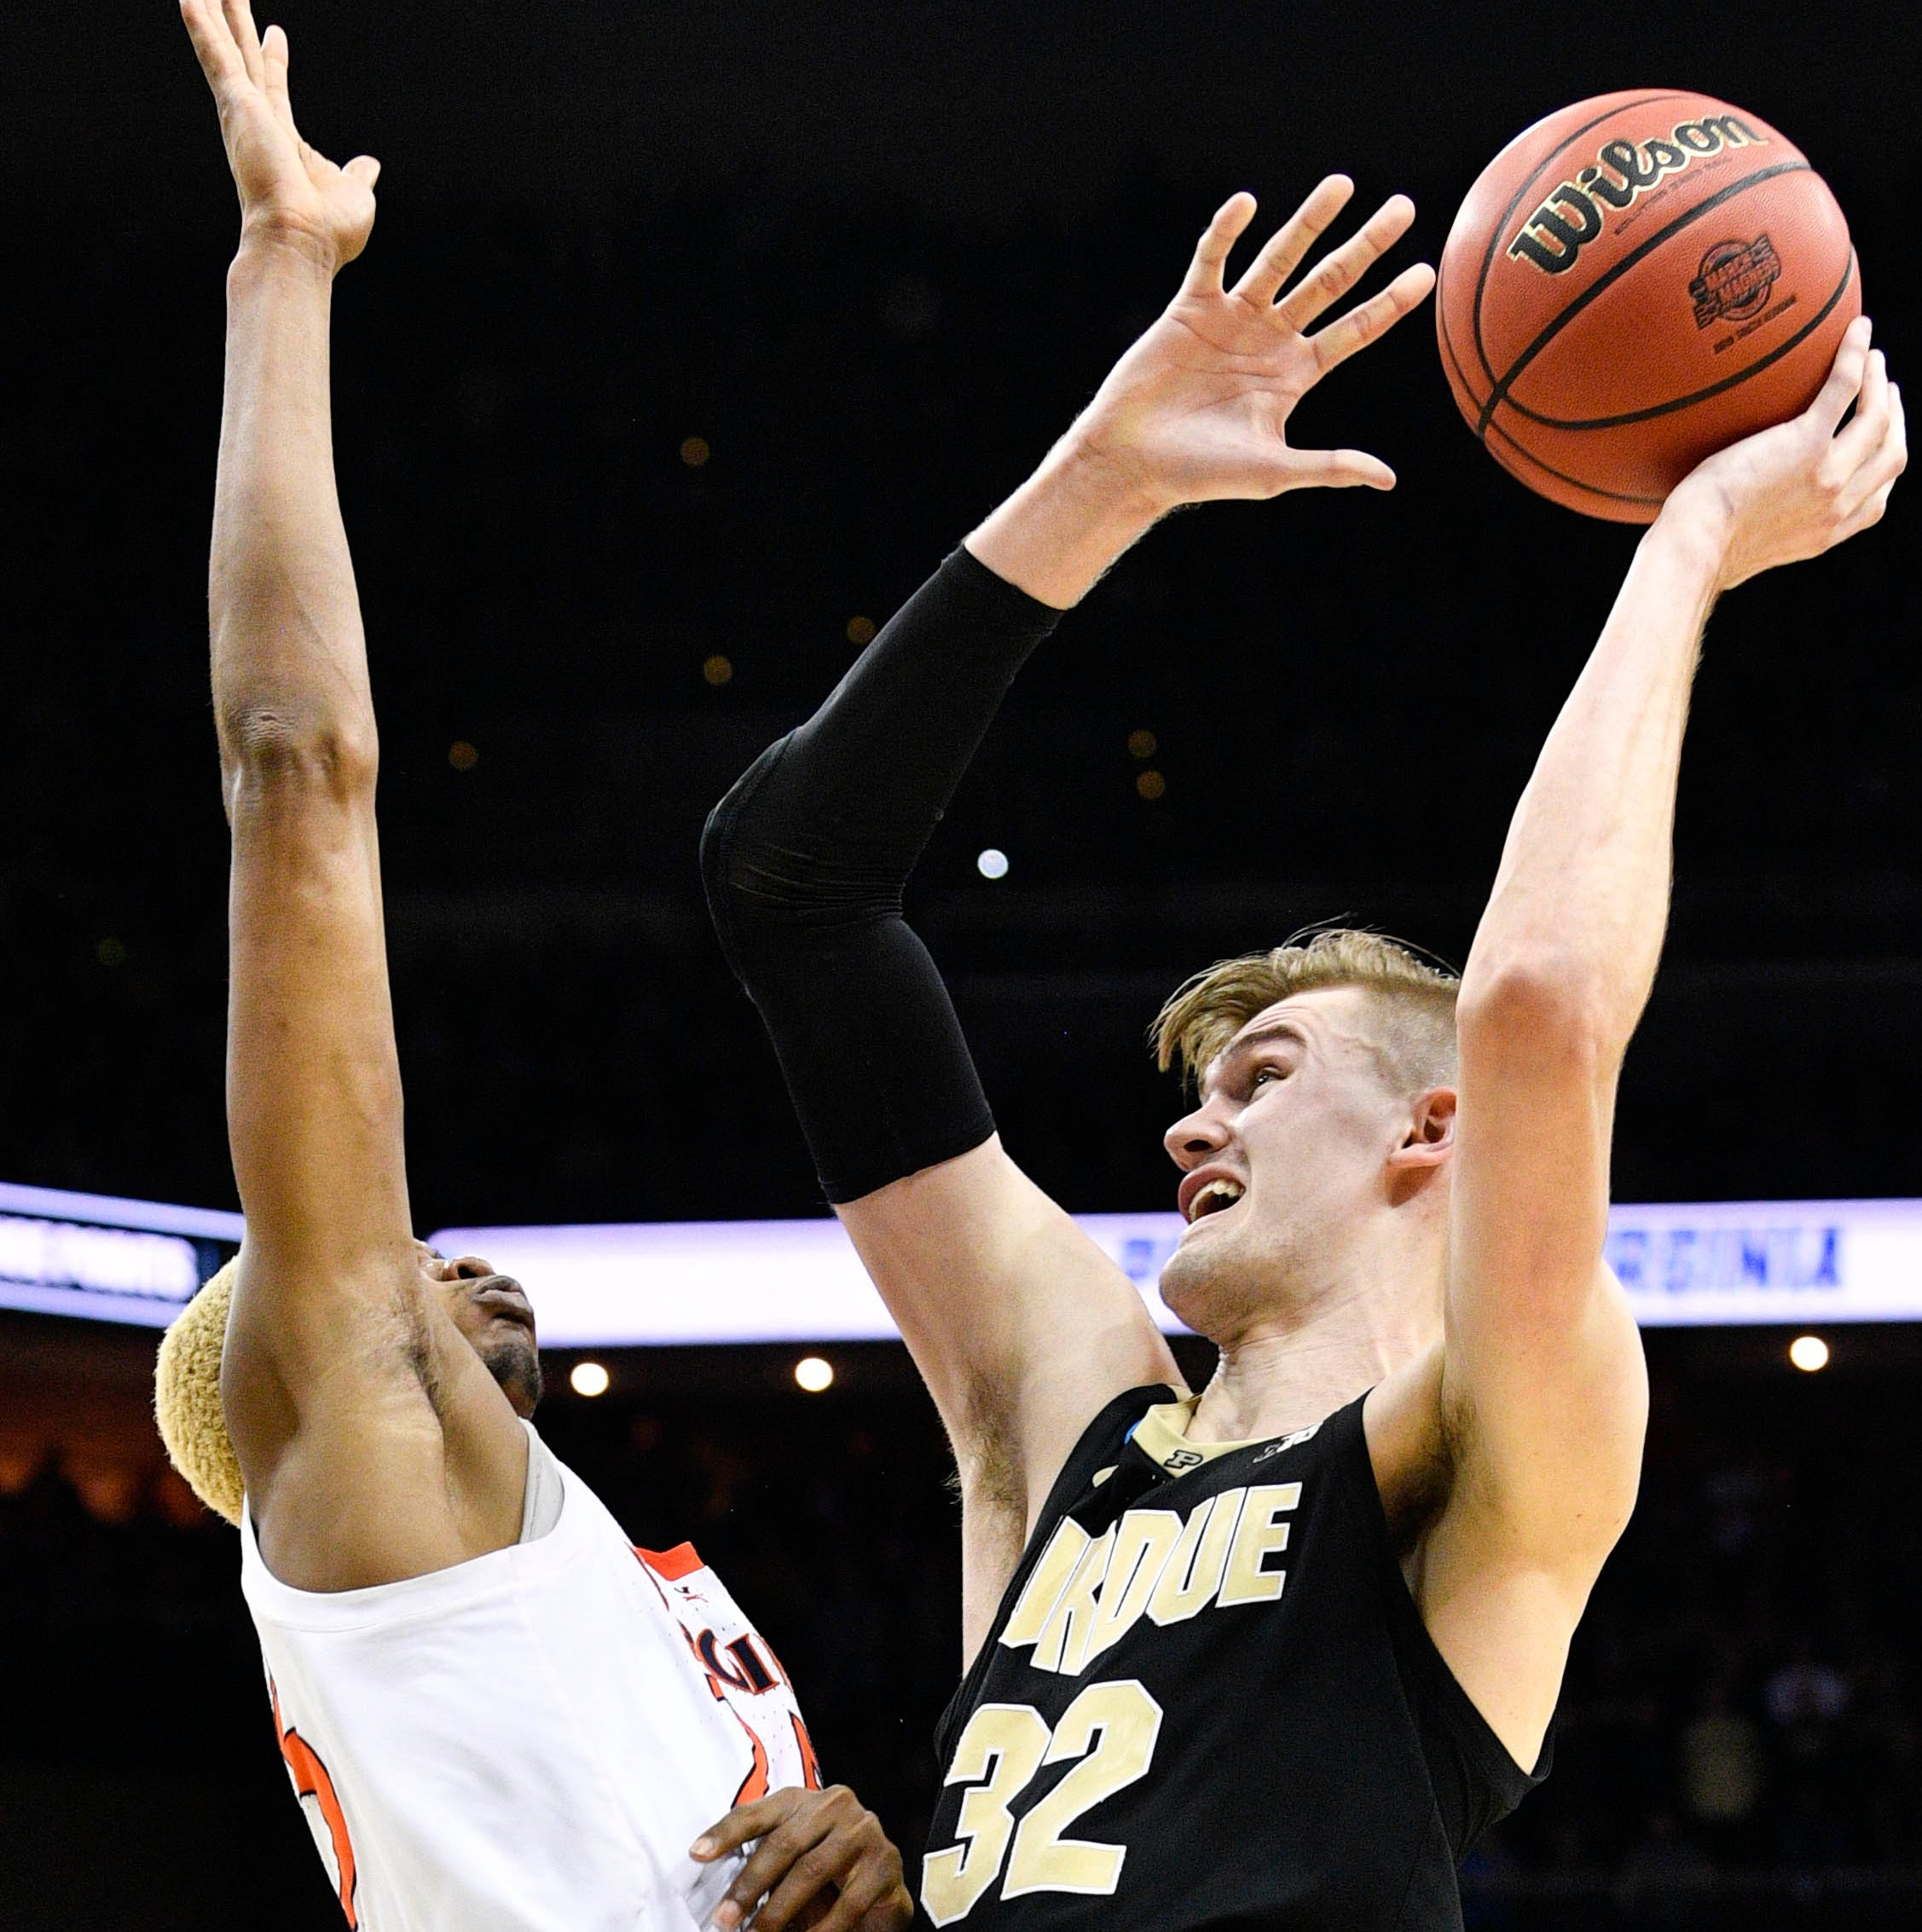 Purdue basketball: Four questions, four potential answers for next season